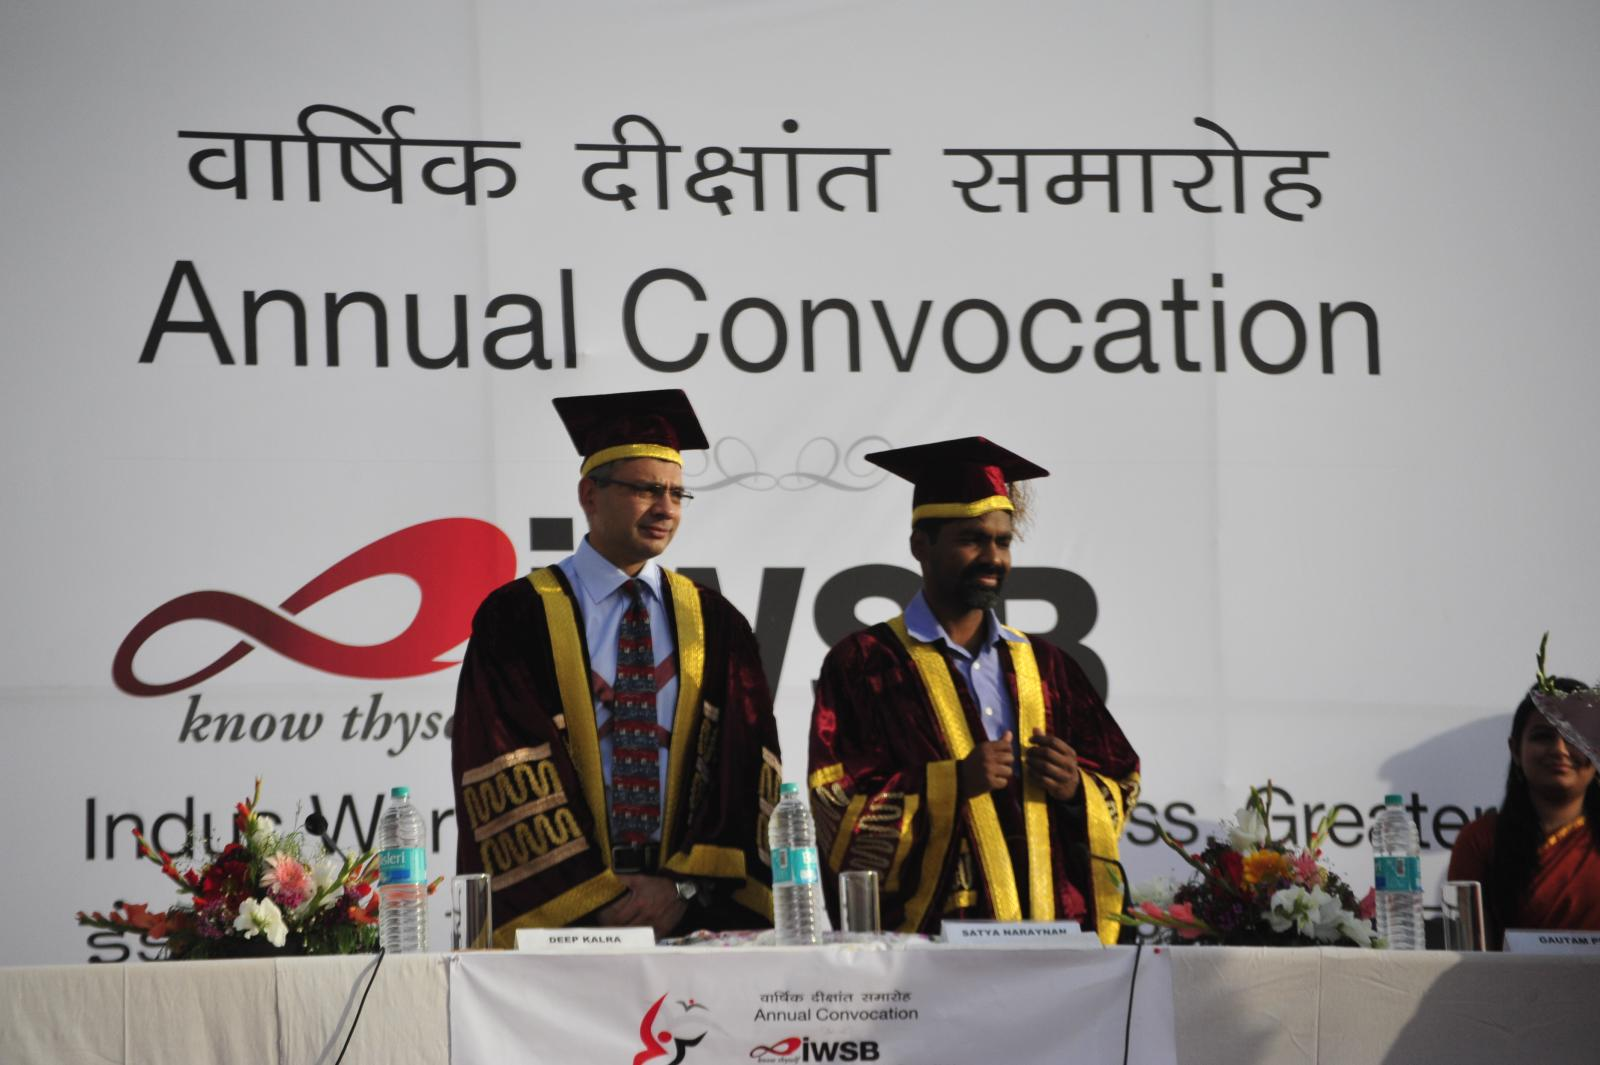 Deep Kalra, Founder MakeMyTrip.com; Satya, Chairman, BOG, IWSB at the 3rd convocation of IWSB